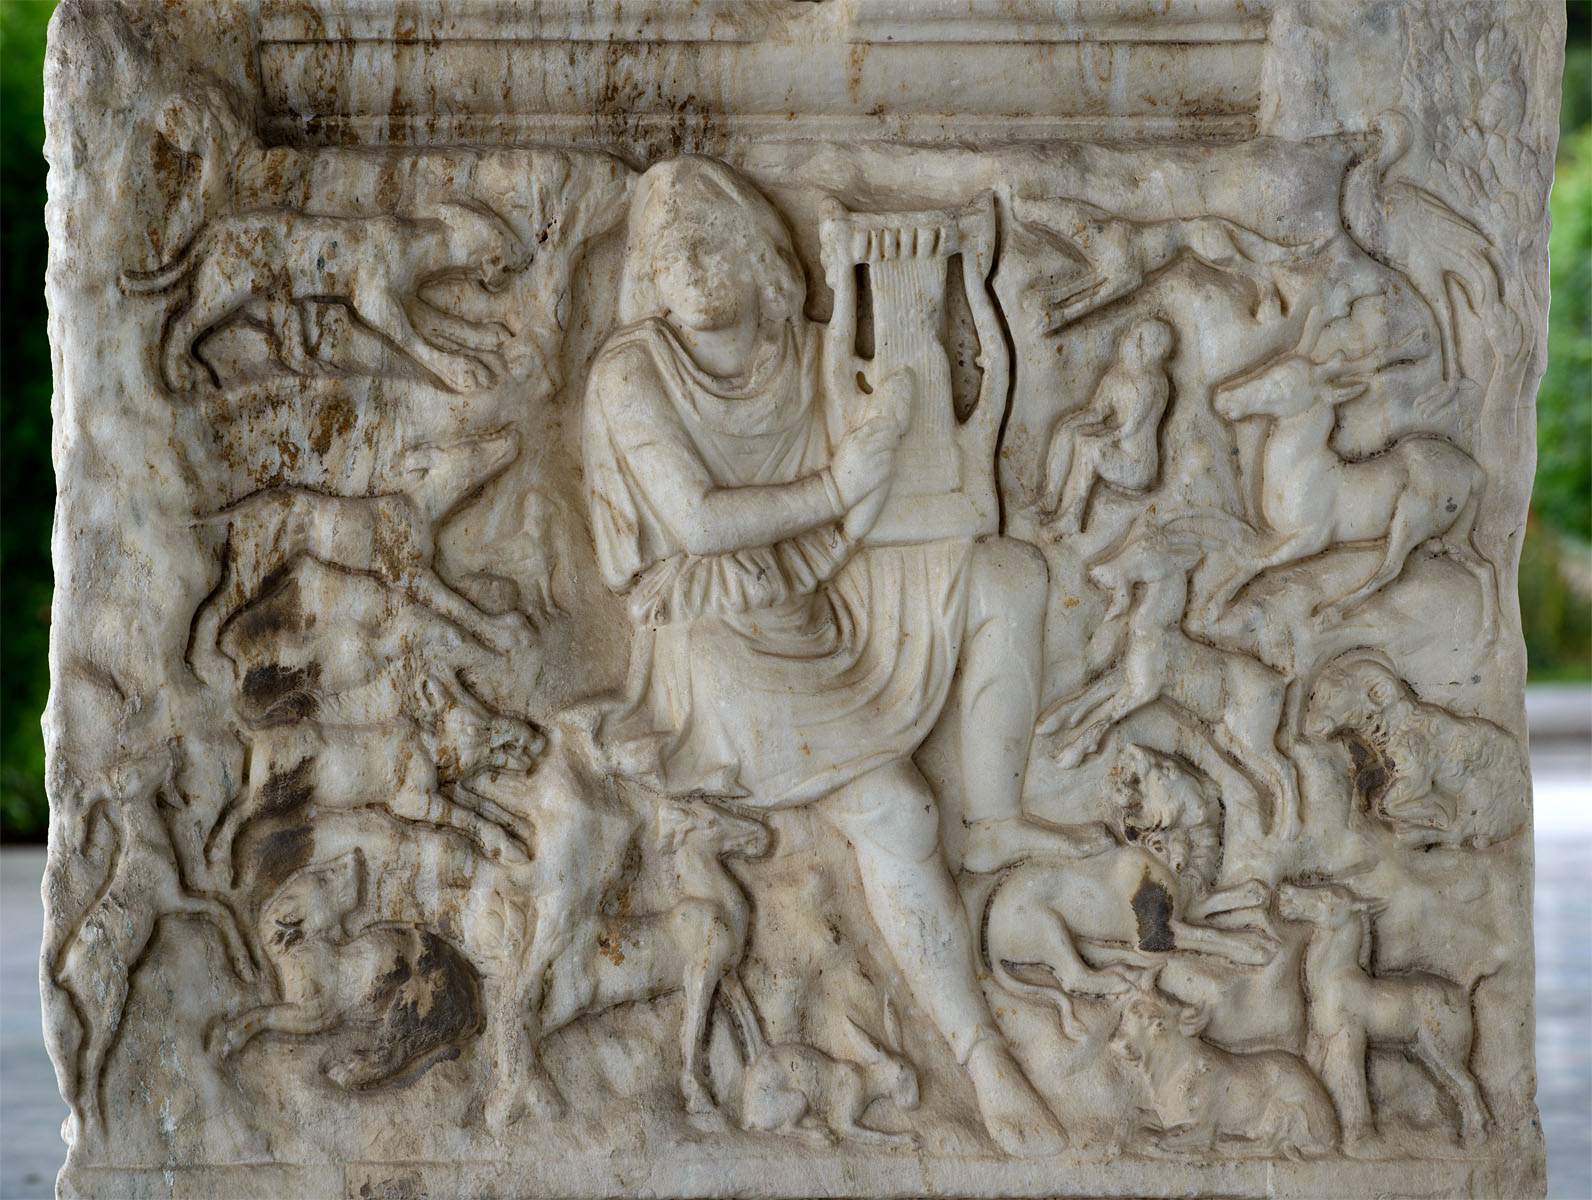 Attic sarcophagus with scenes of battles between the Greeks and the Trojan and a scene of Calydonian hunt — relief of the right short side. Marble. 220—230 CE. Inv. No. 1246. Thessaloniki, Archaeological Museum